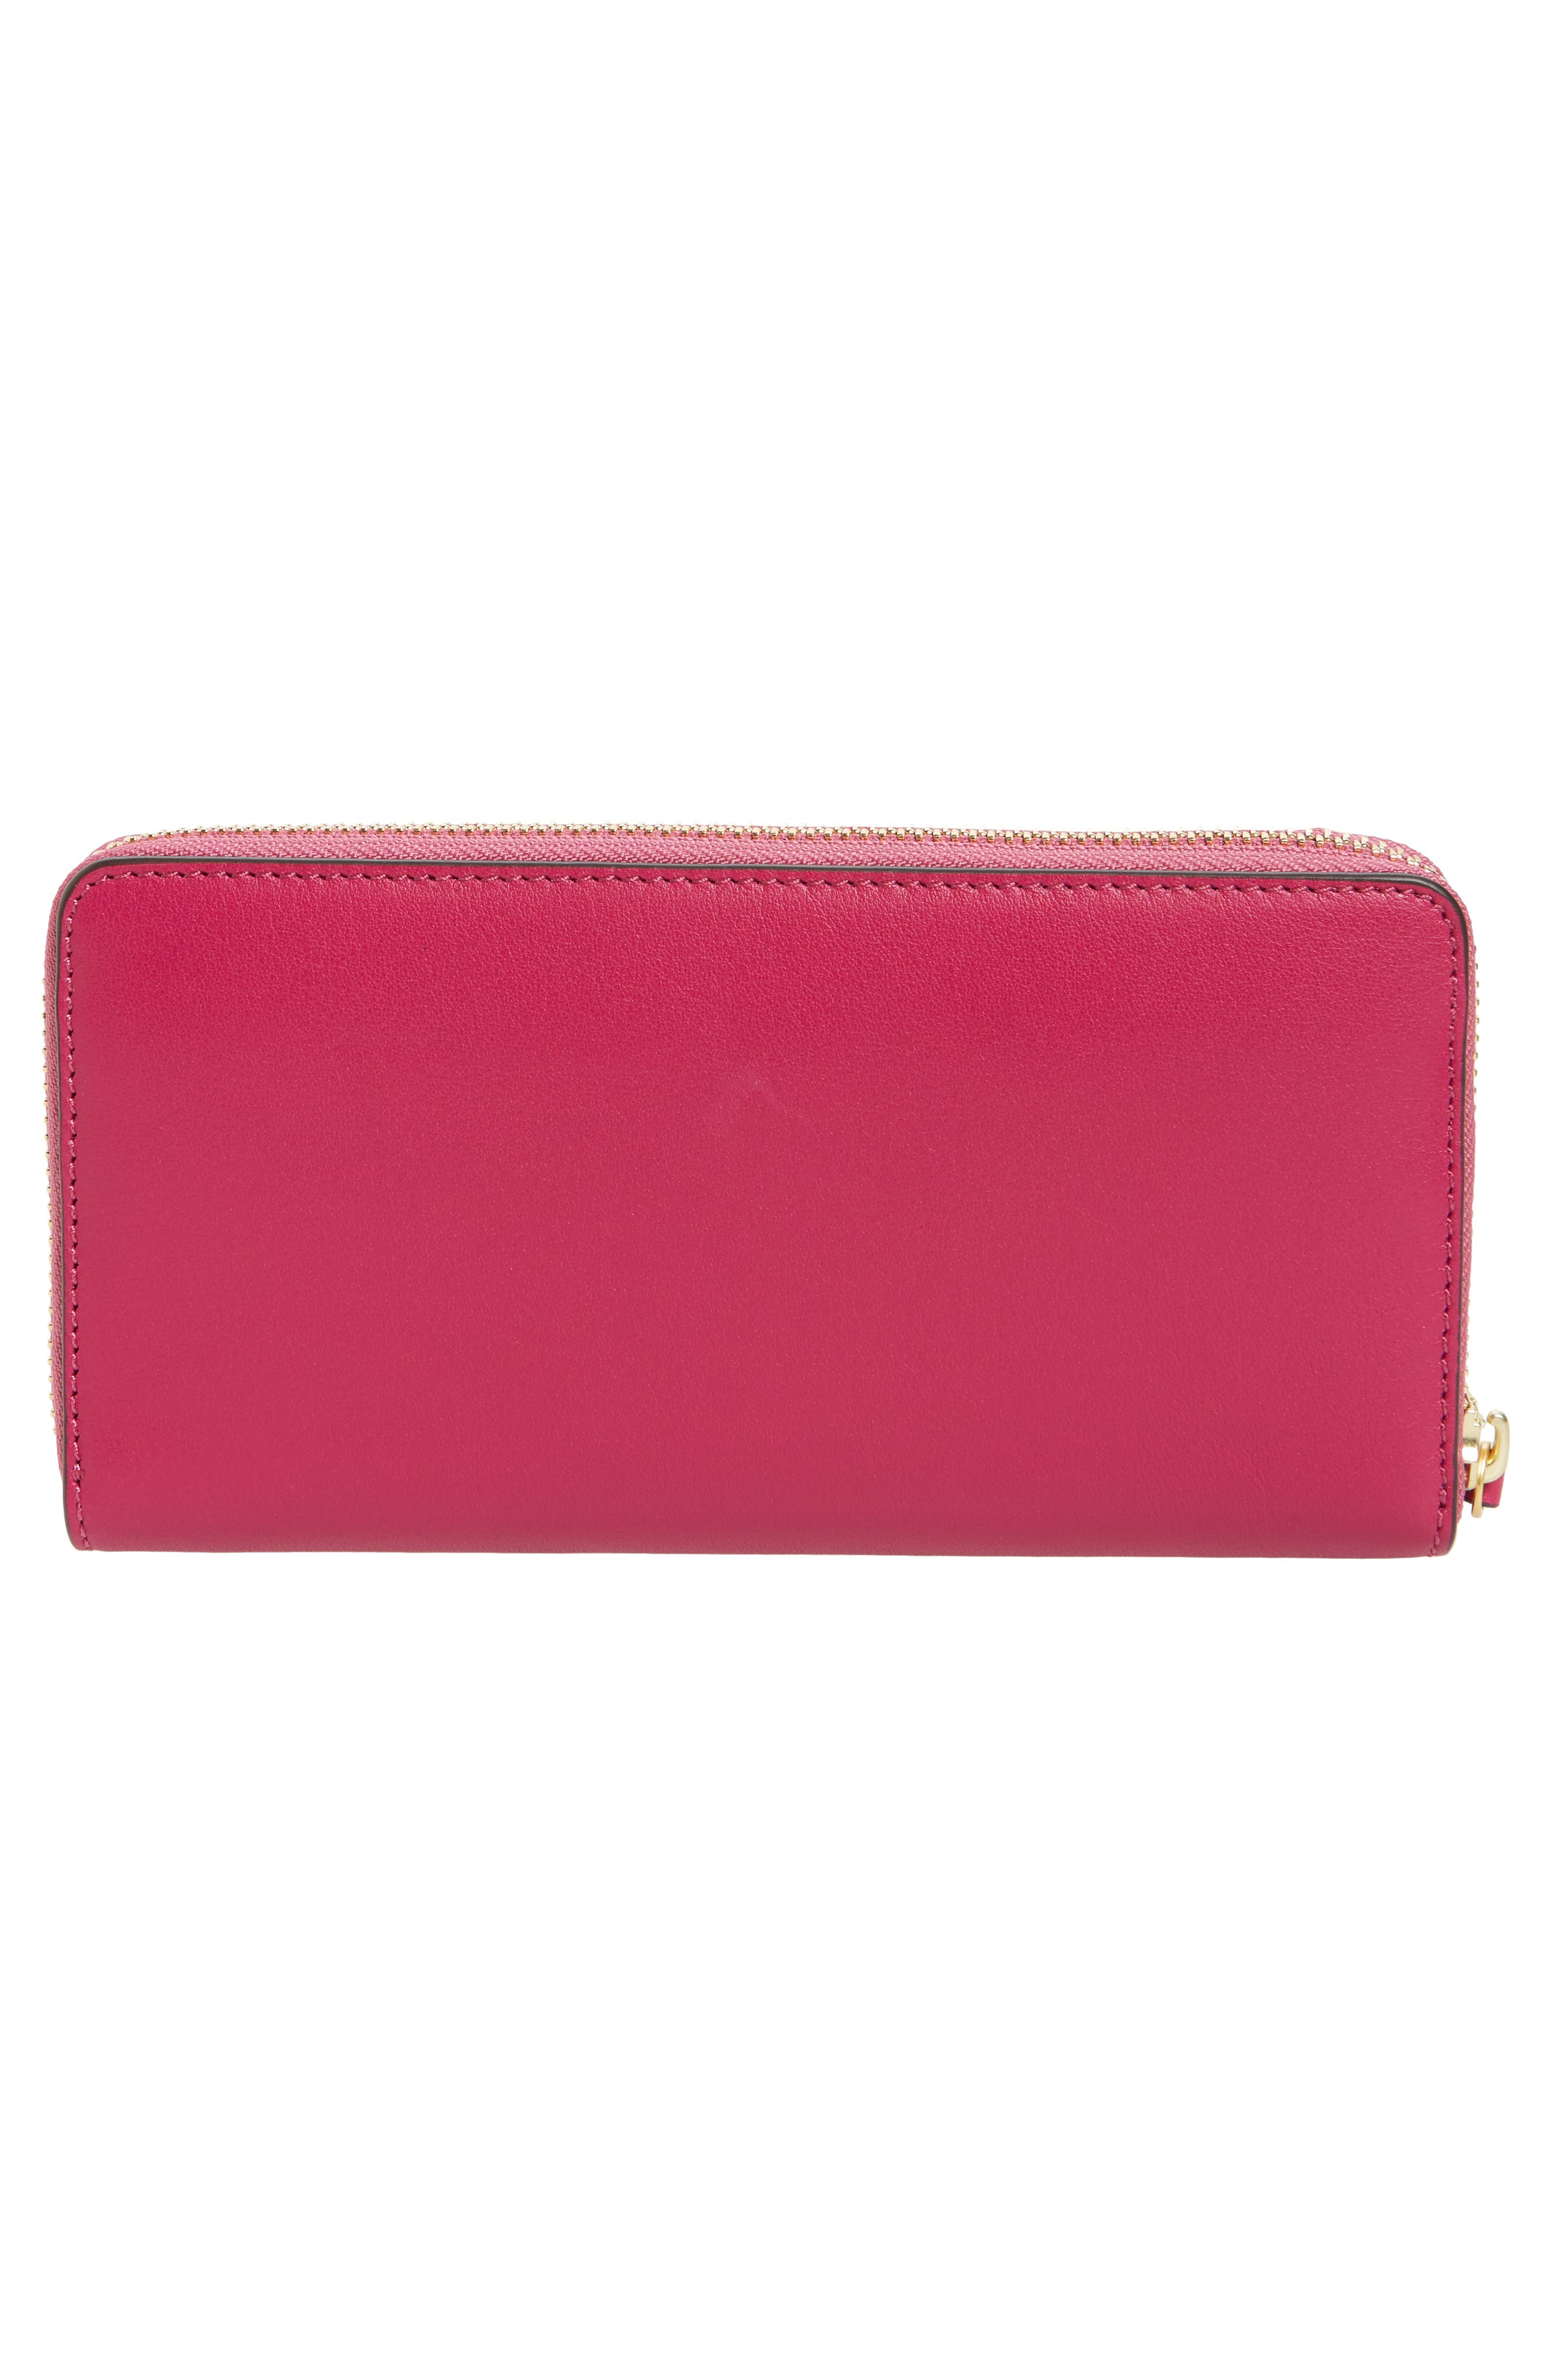 Charlie Leather Continental Wallet,                             Alternate thumbnail 2, color,                             Party Fuchsia